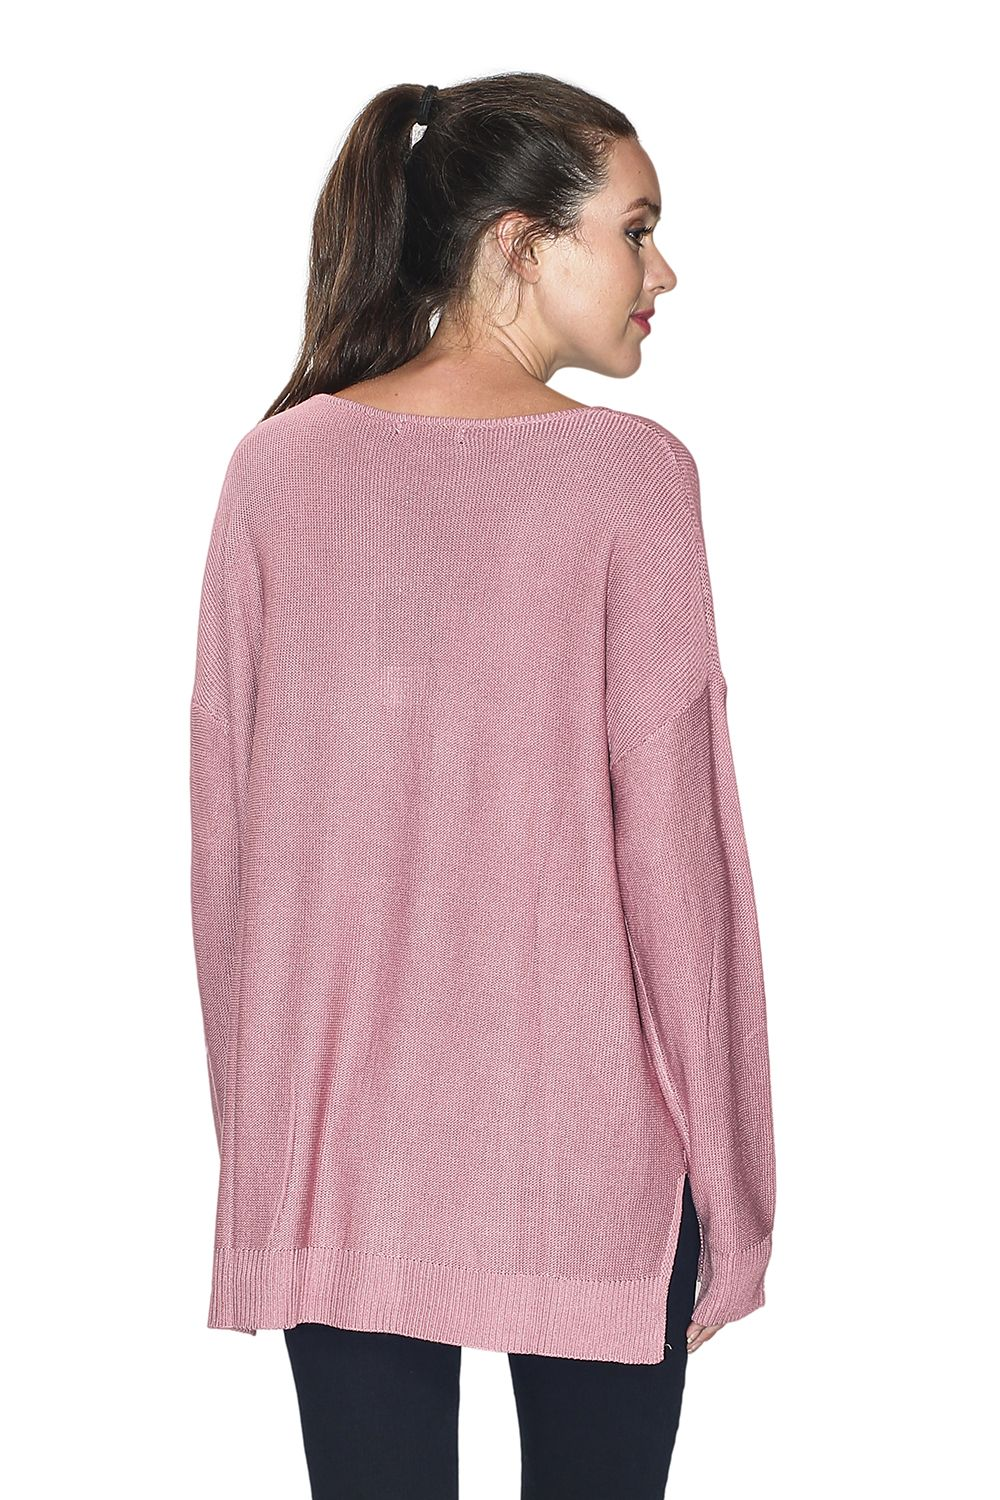 Assuili Longline V-neck Sweater with Side Splits in Pink